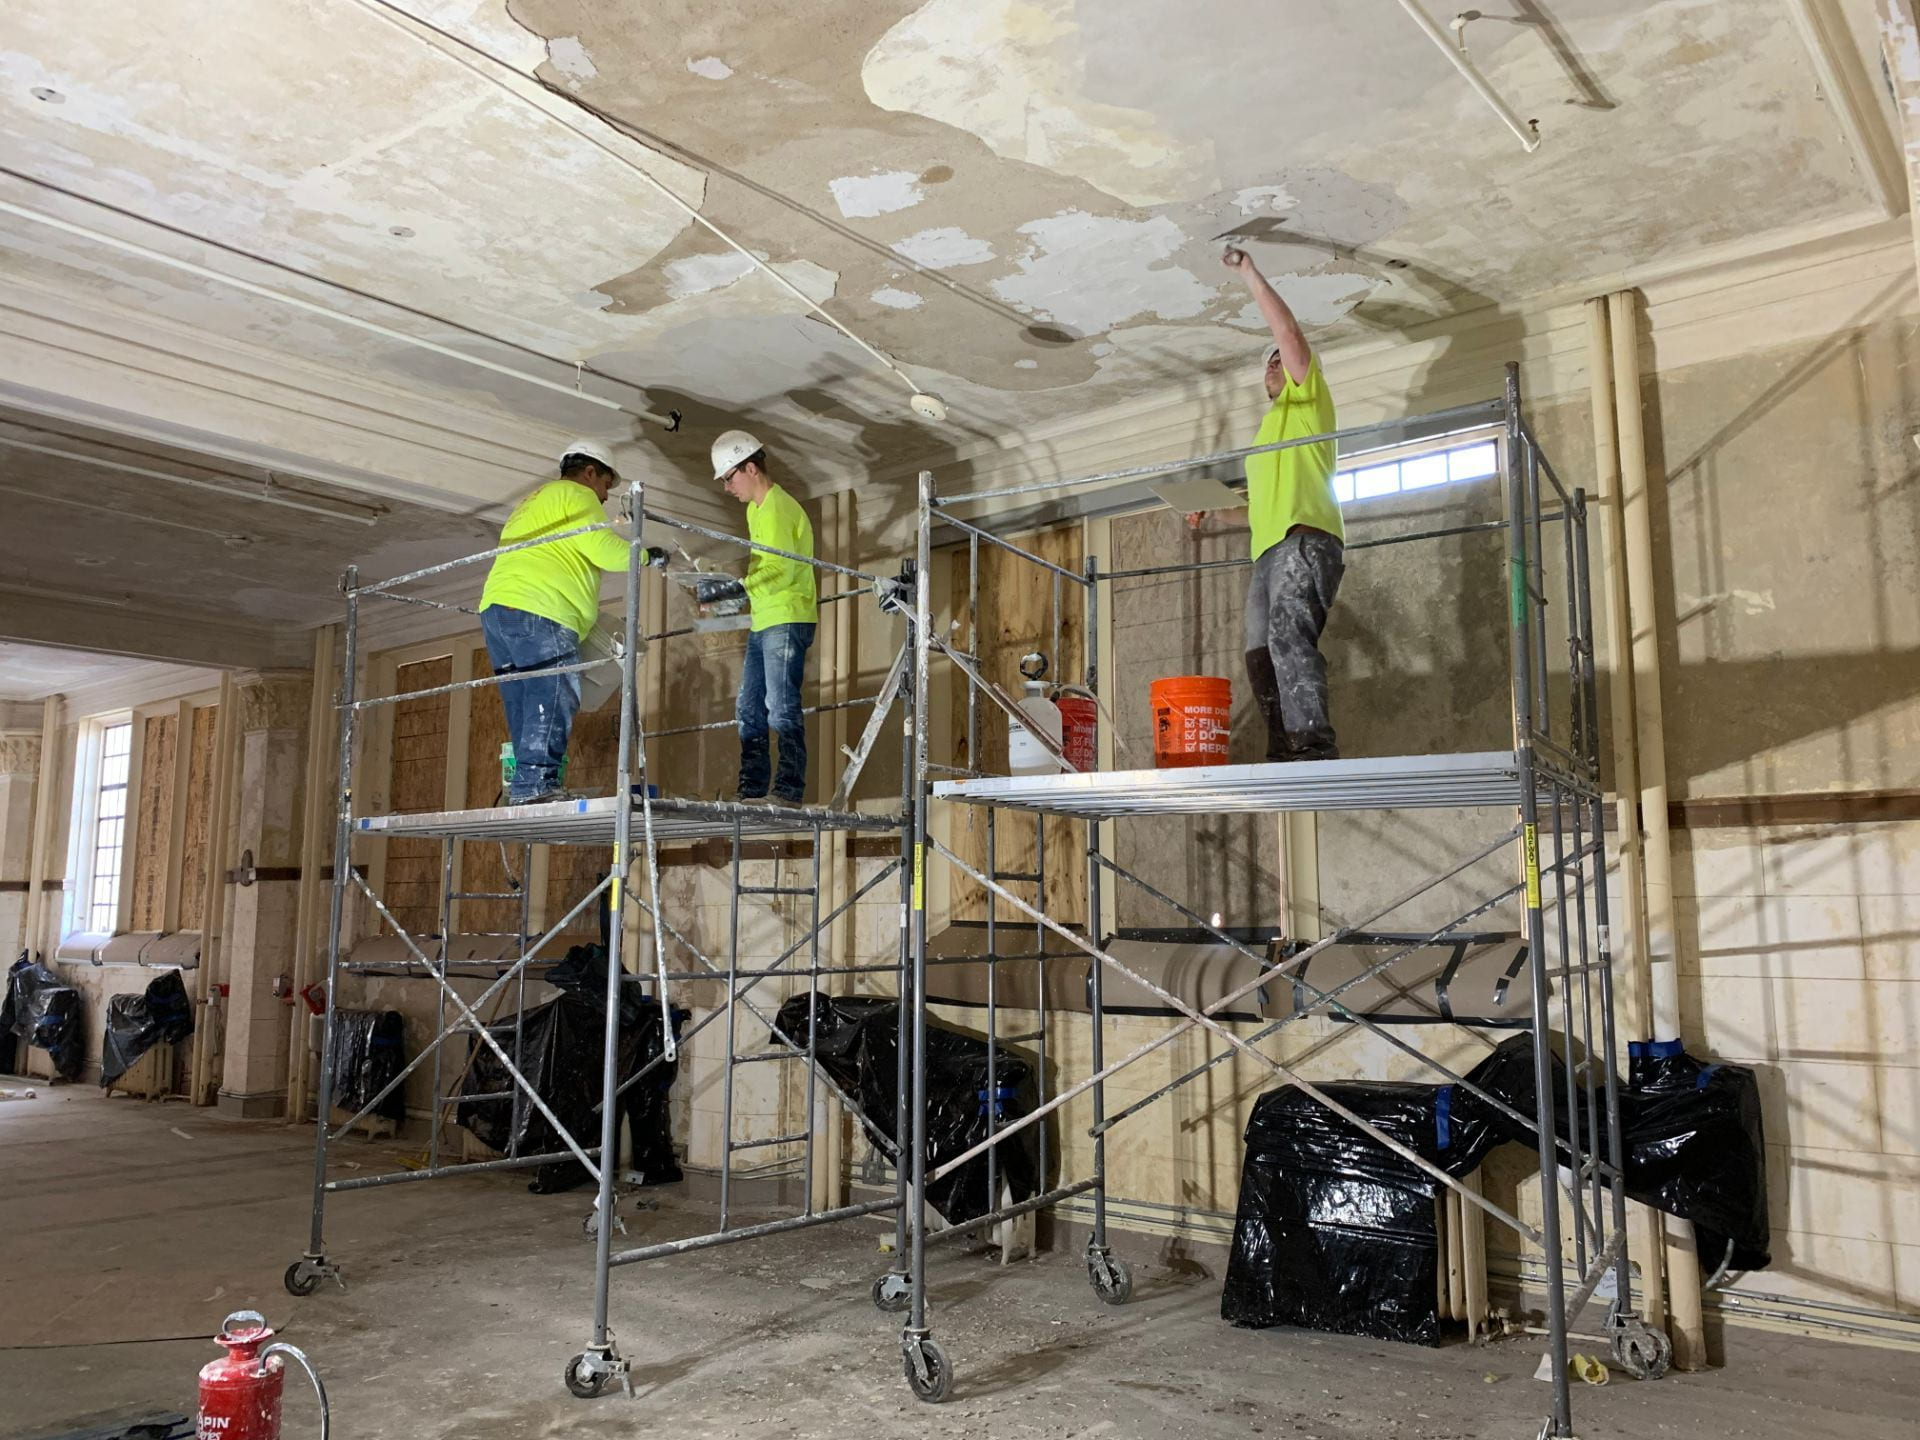 Three workers repair plaster on the ceiling in the historic portion of the building.